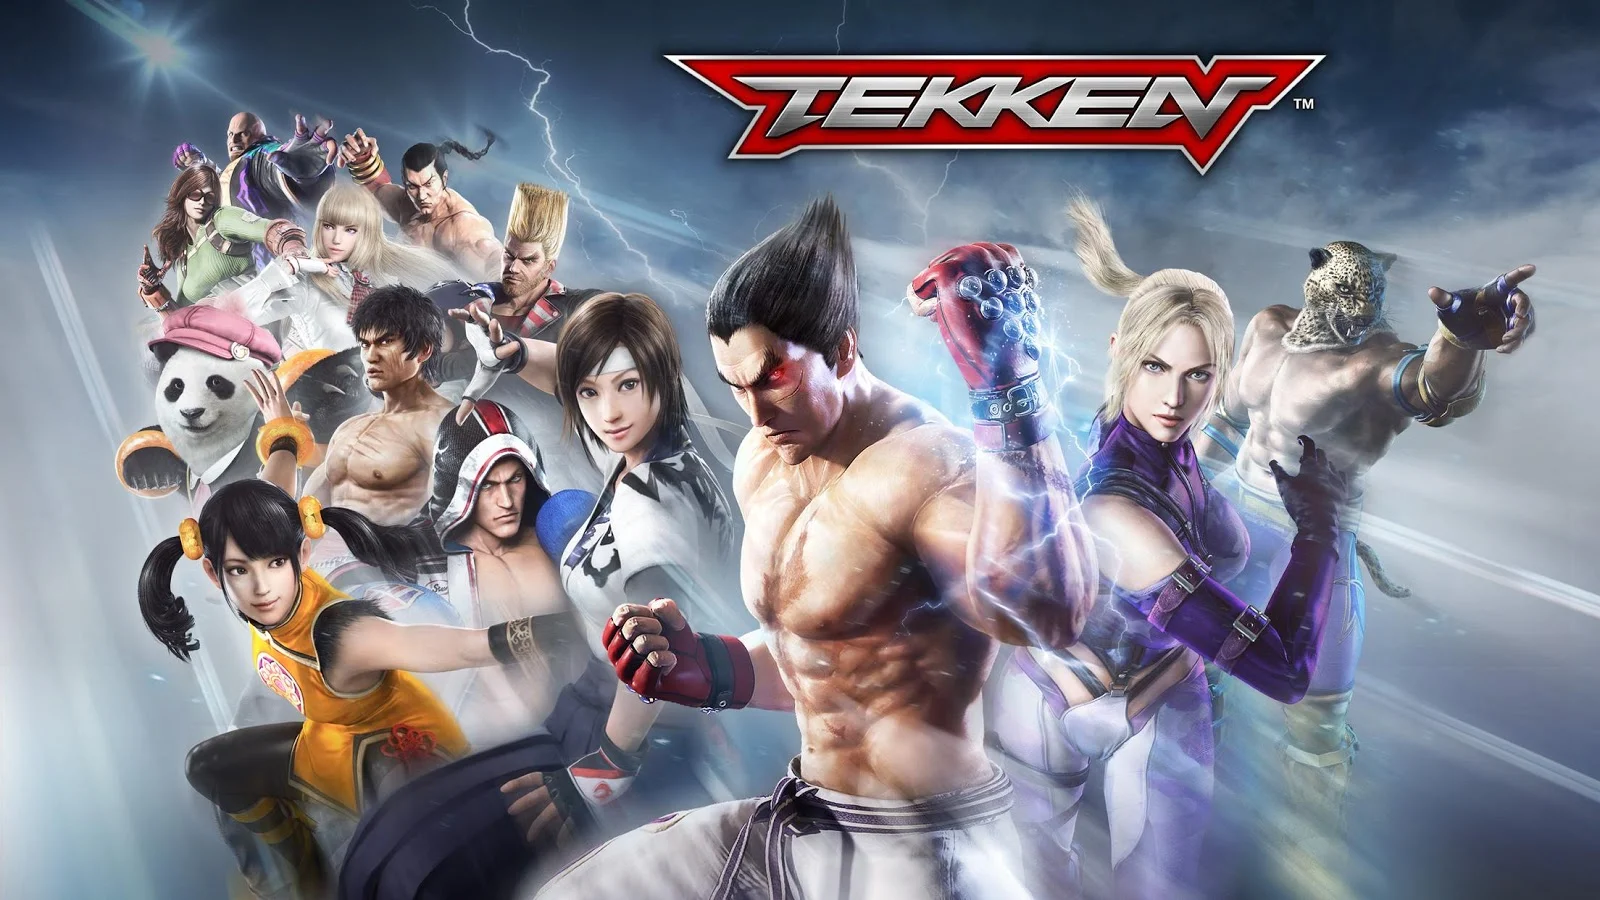 Latest Version Of Tekken Game Has Launches Officially On Android Devices